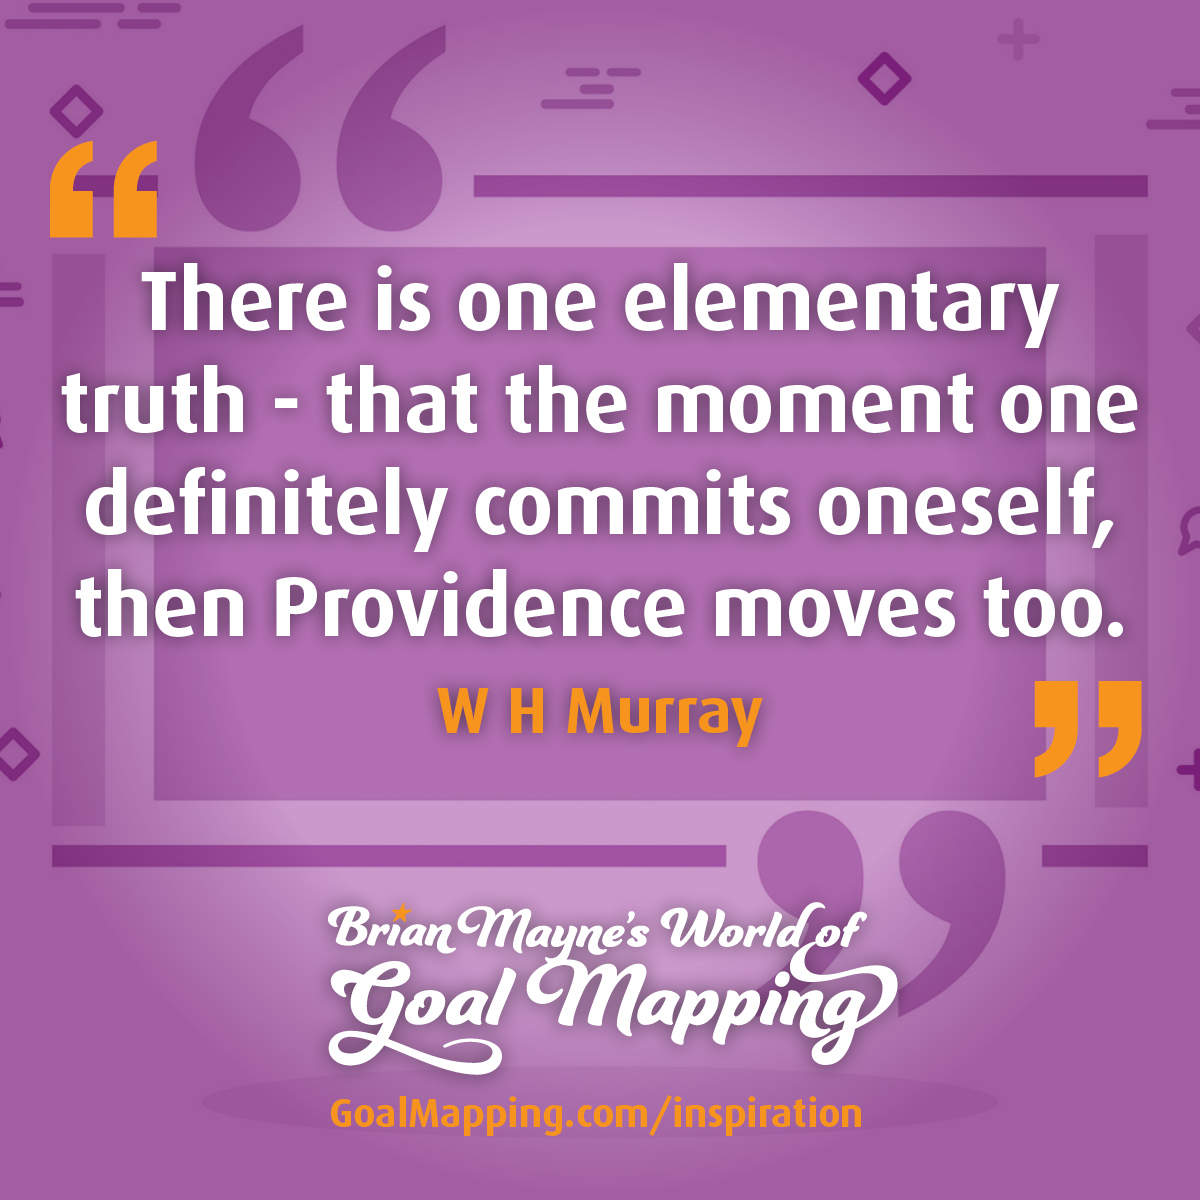 """""""There is one elementary truth - that the moment one definitely commits oneself, then Providence moves too."""" W.H. Murray"""